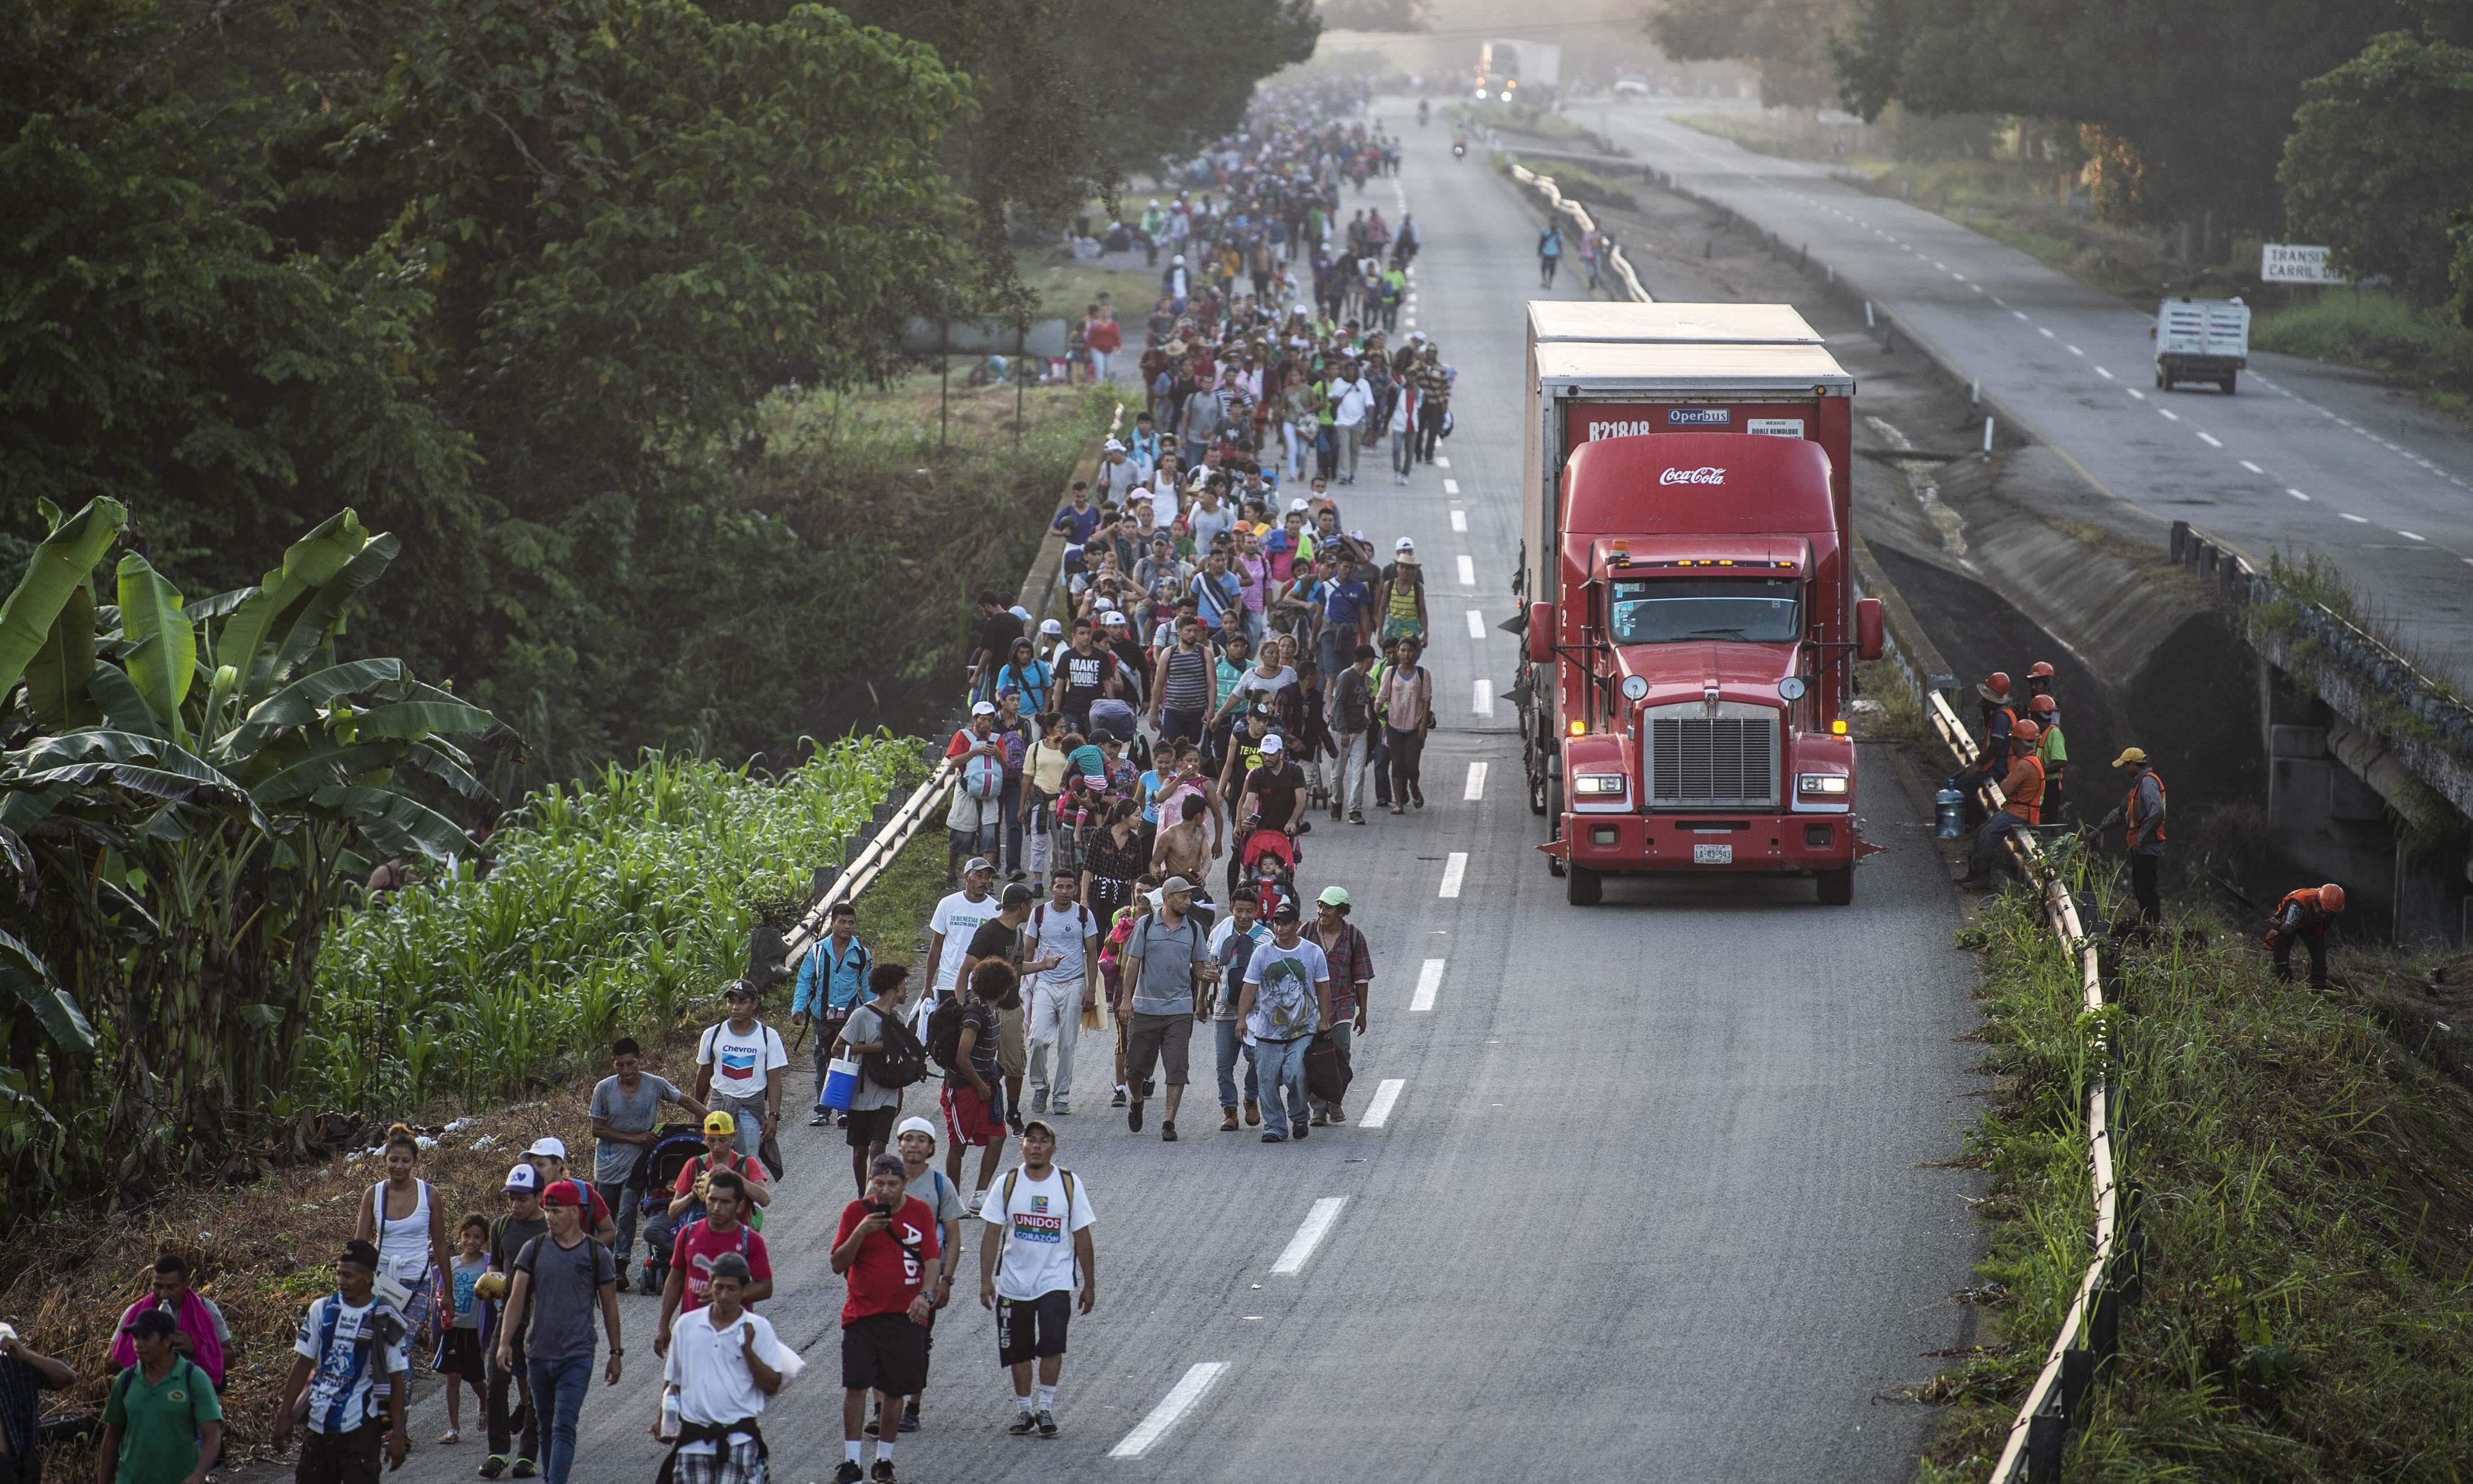 The Guardian view on the migrant convoy: a heroic journey